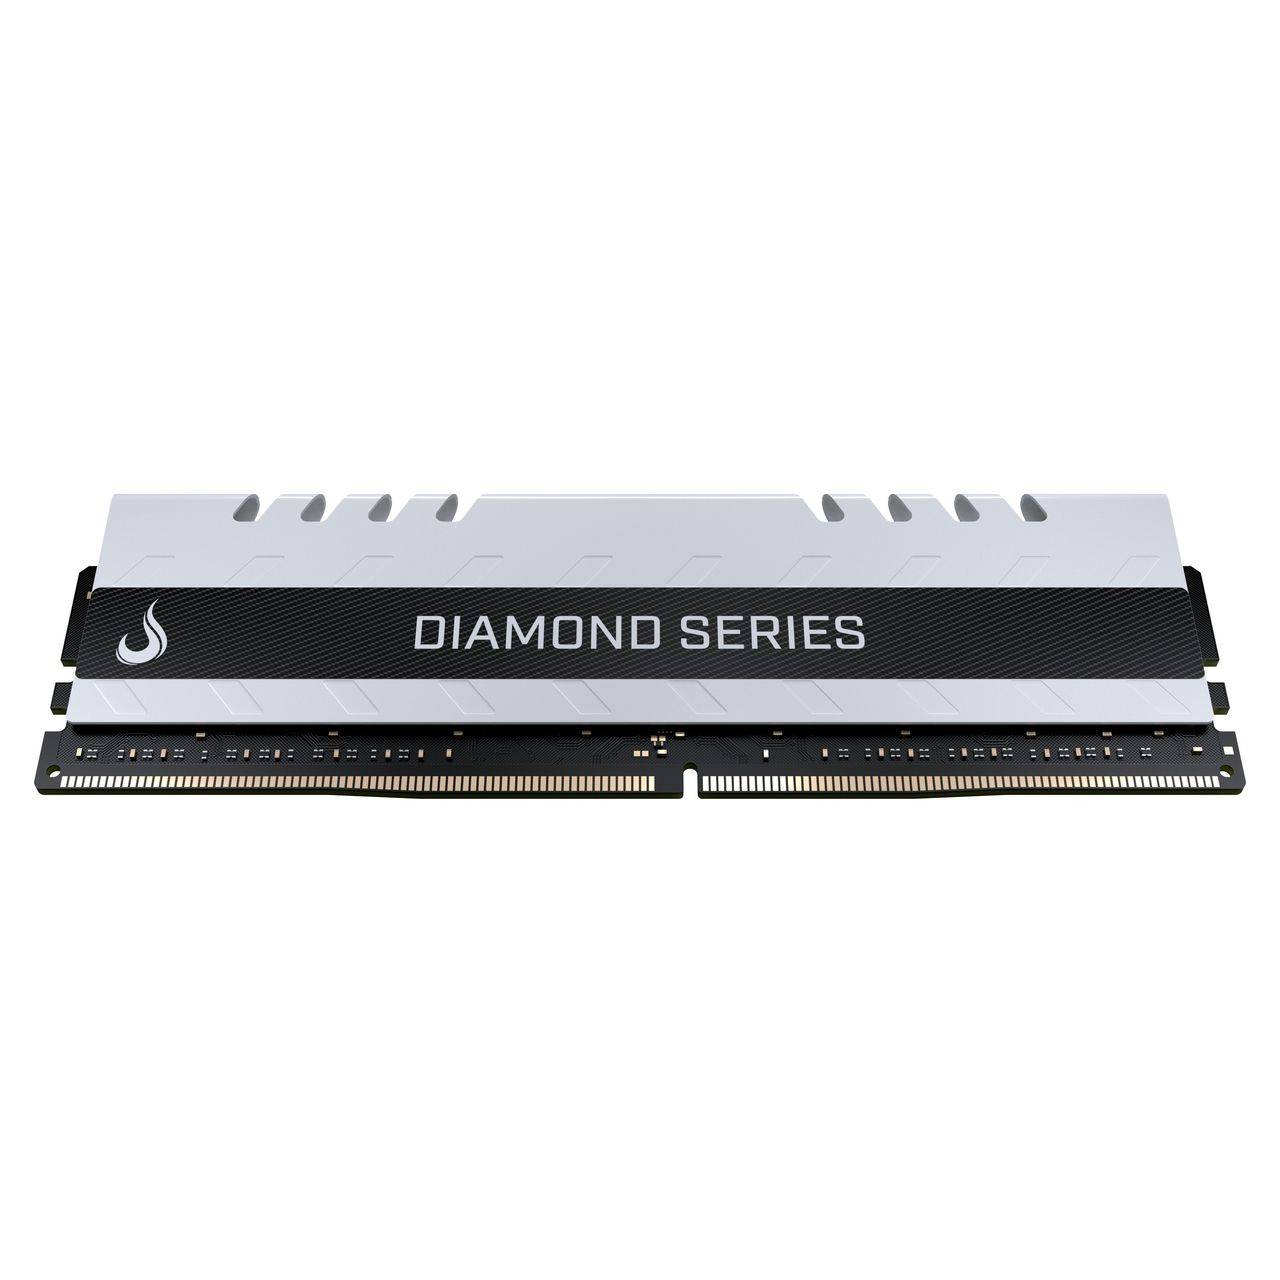 Memoria Ram DDR4 4GB 3000MHZ Diamond - RM-D4-4G-3000D  WHITE  - Loja Rise Mode